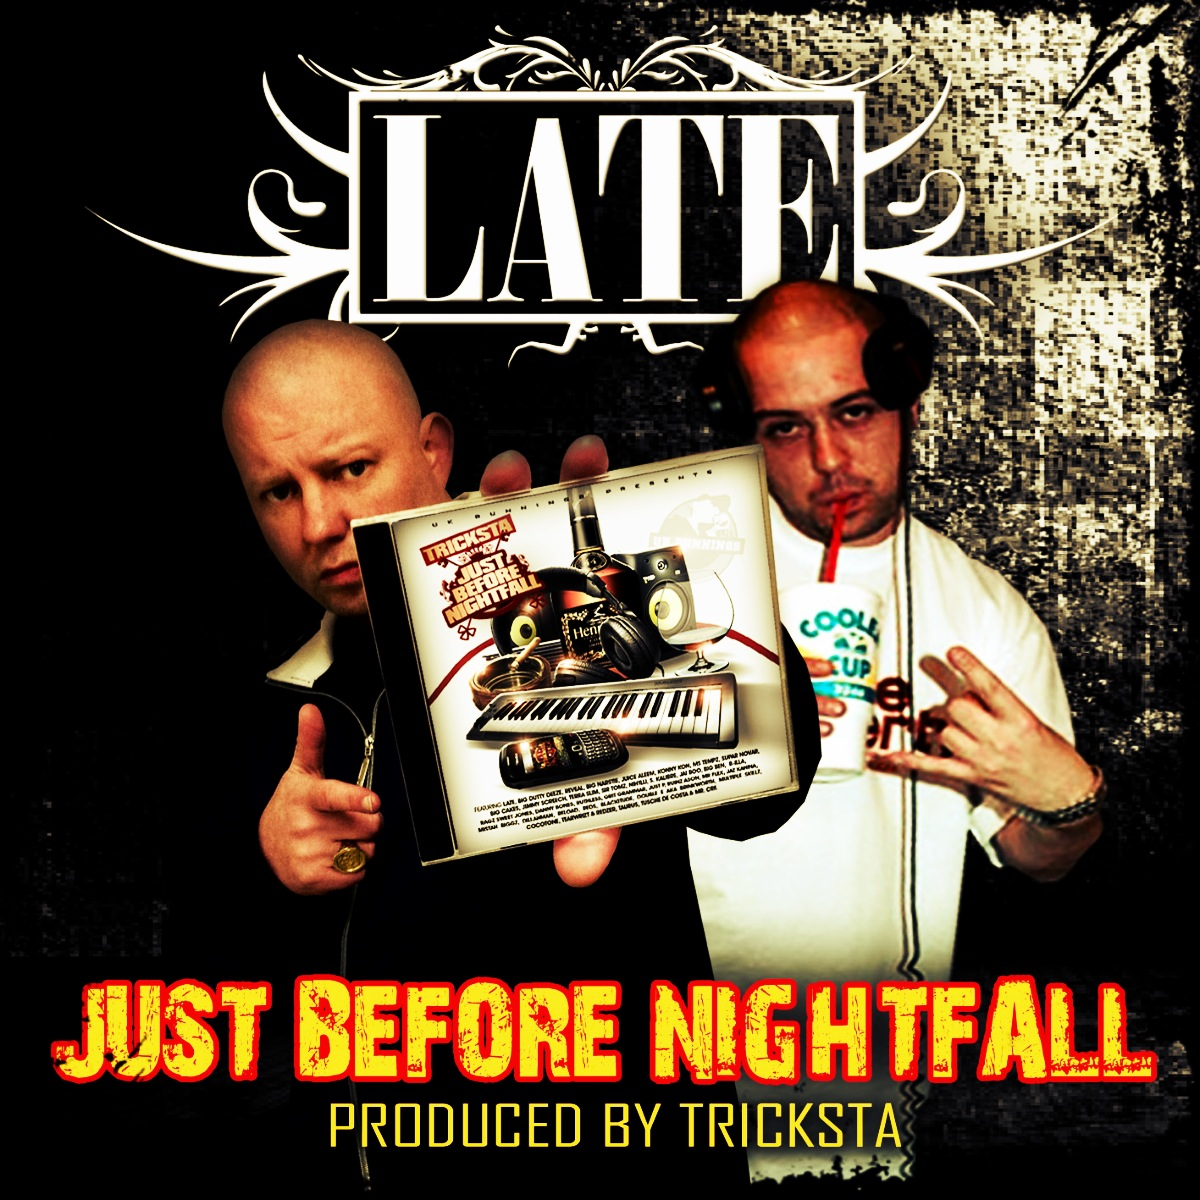 Straight Realism: LATE - JUST BEFORE NIGHTFALL (Produced by